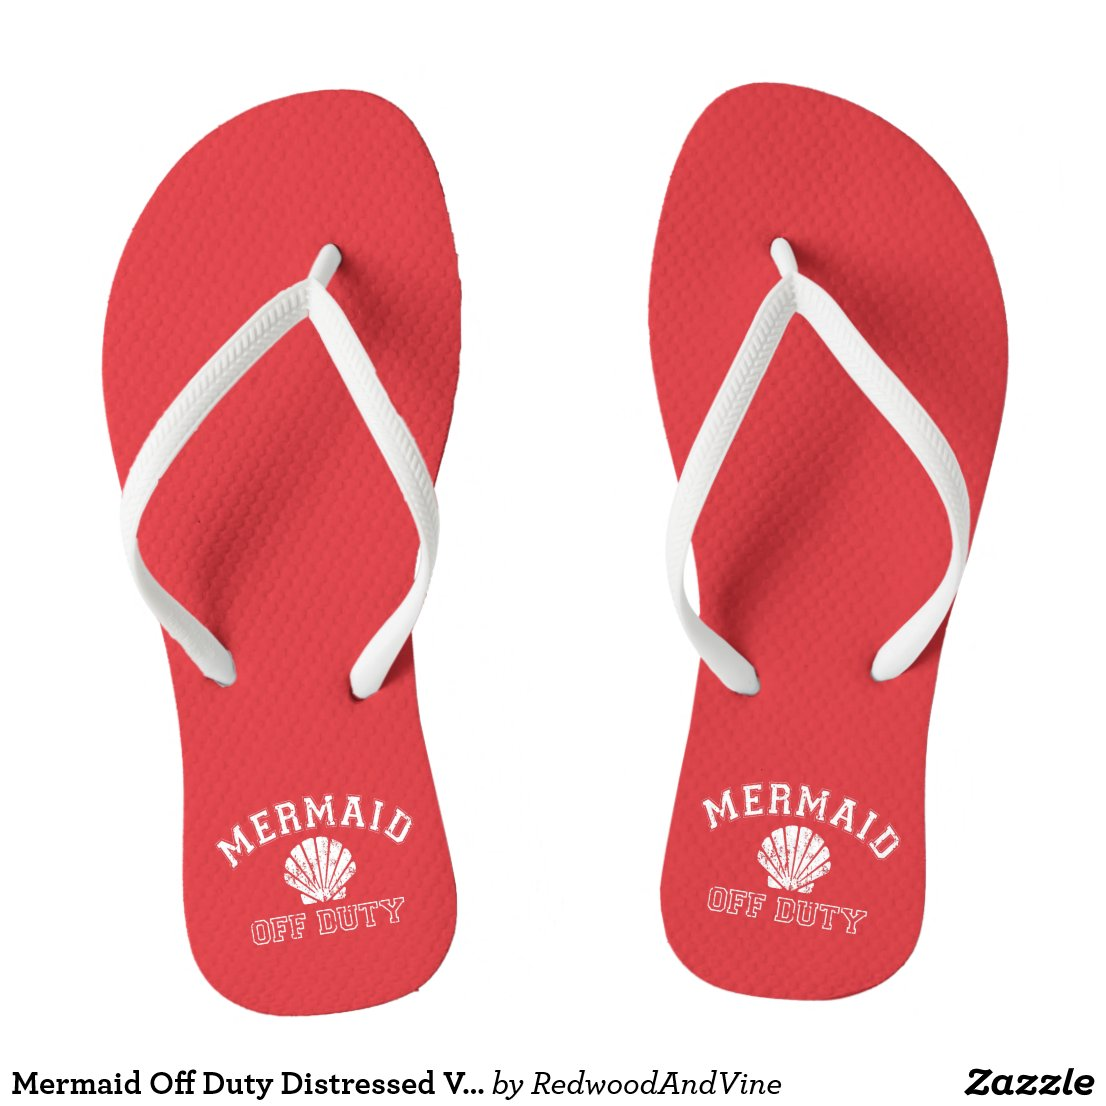 Mermaid Off Duty Distressed Vintage Red Flip Flops